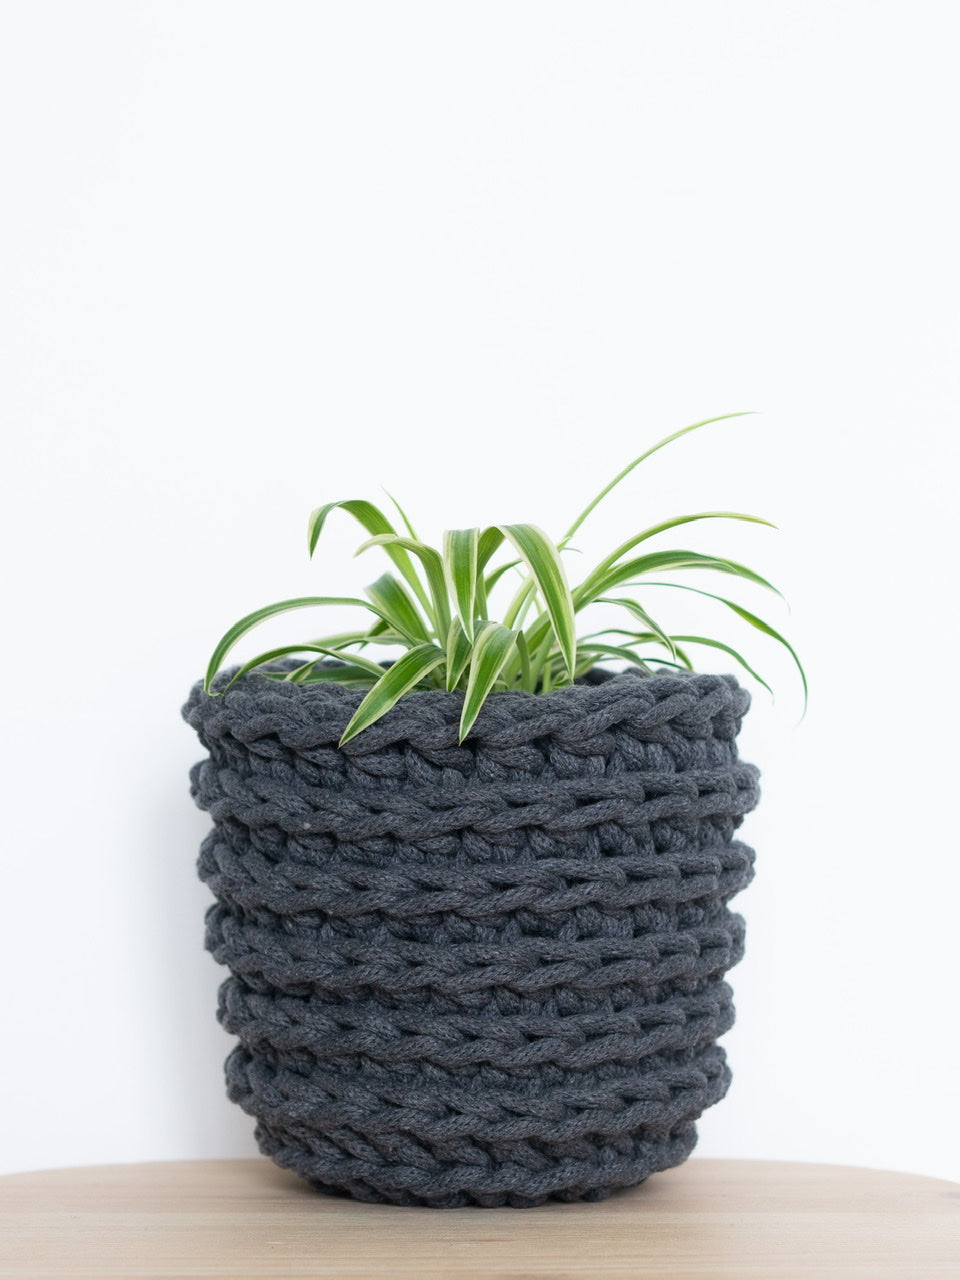 Small crochet cotton sustainable eco plant pot - charcoal grey | Knttd